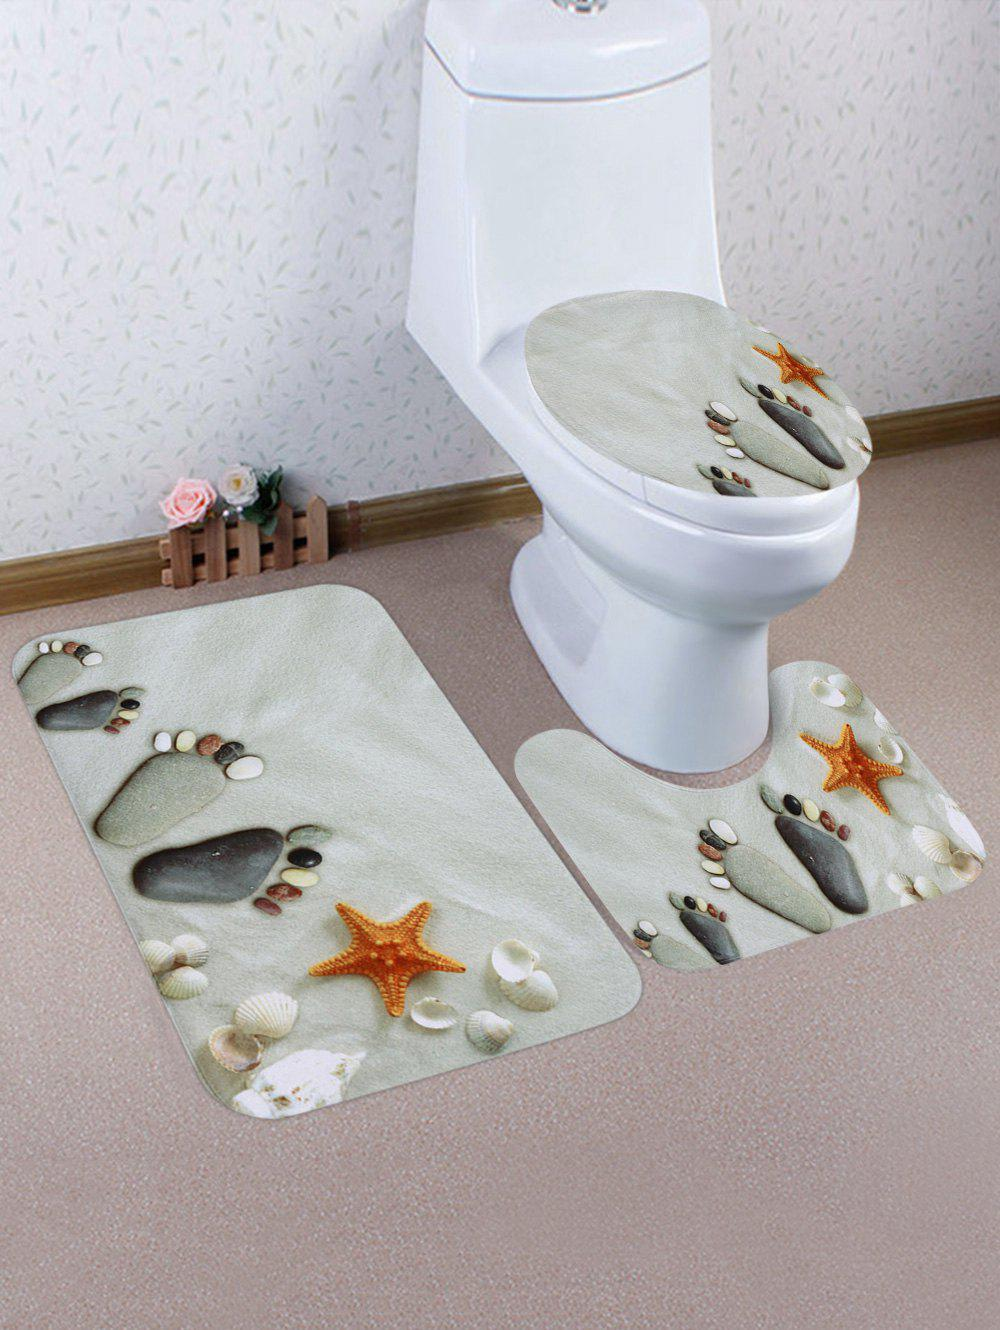 Beach Stone Footprints Starfish Print Bathroom Non Slip Mat Set 3Pcs - multicolor